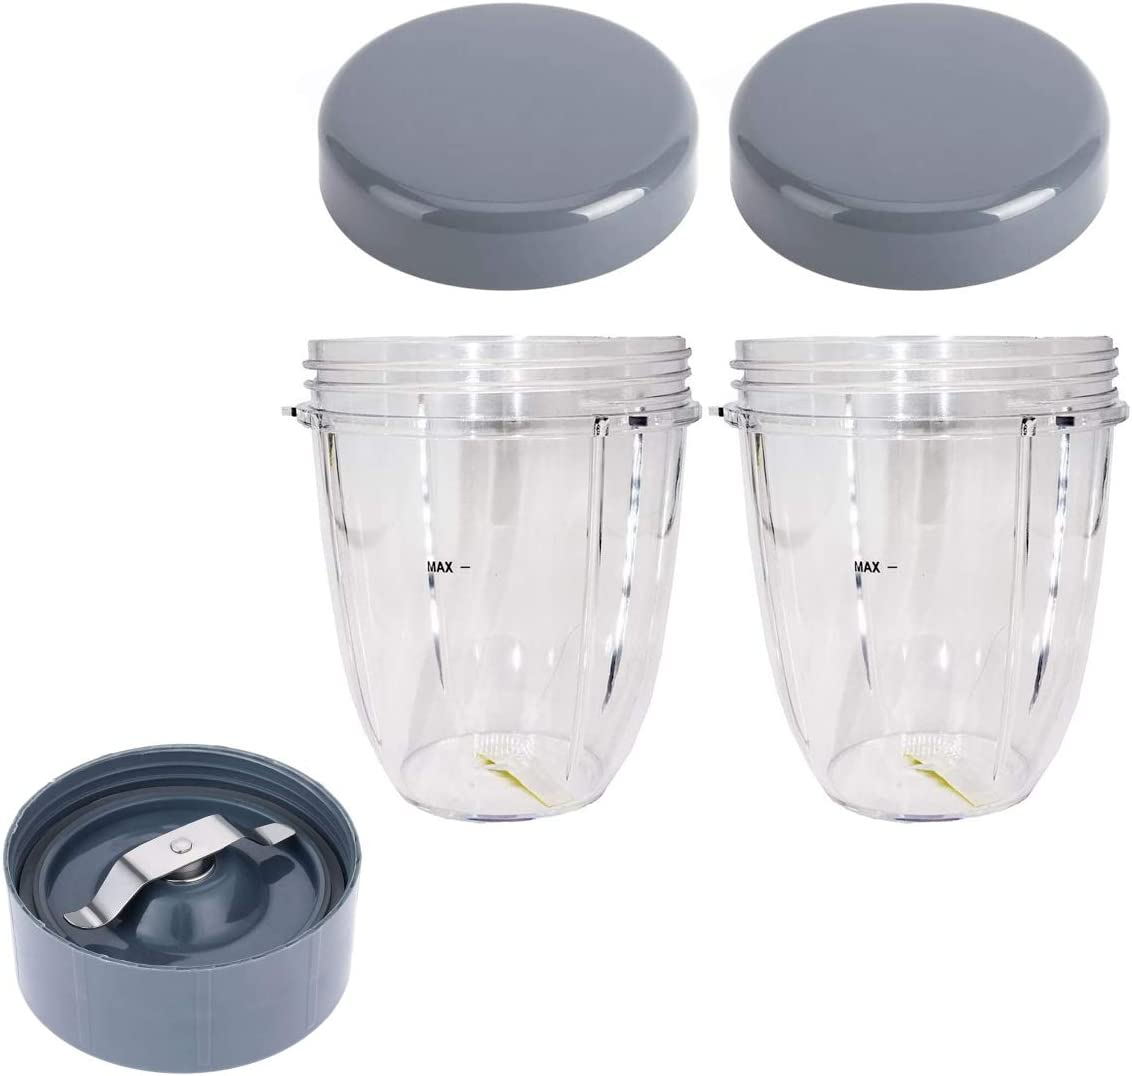 Flip Top To Go Lid with 18oz Cup and Milling Blade Extractor Blade, Compatible with Nutribullet 600W 900W Blender Juicer